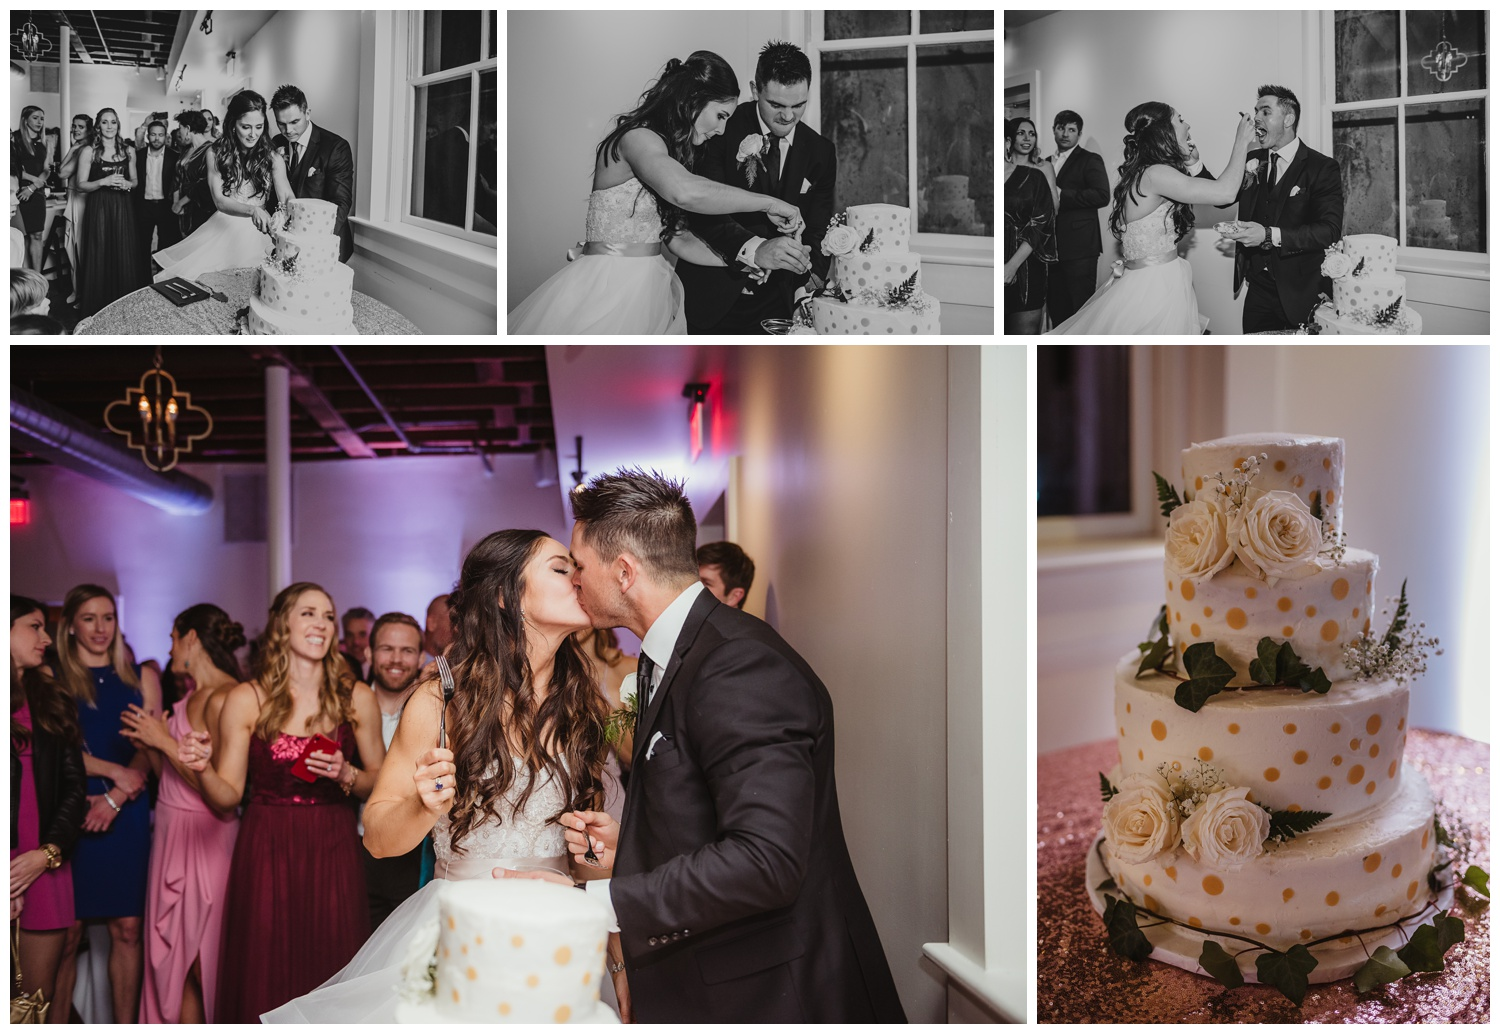 The bride and groom enjoyed cutting the cake with all of their guests after their wedding ceremony at All Saints Chapel in Raleigh, North Carolina, pictures by Rose Trail Images.